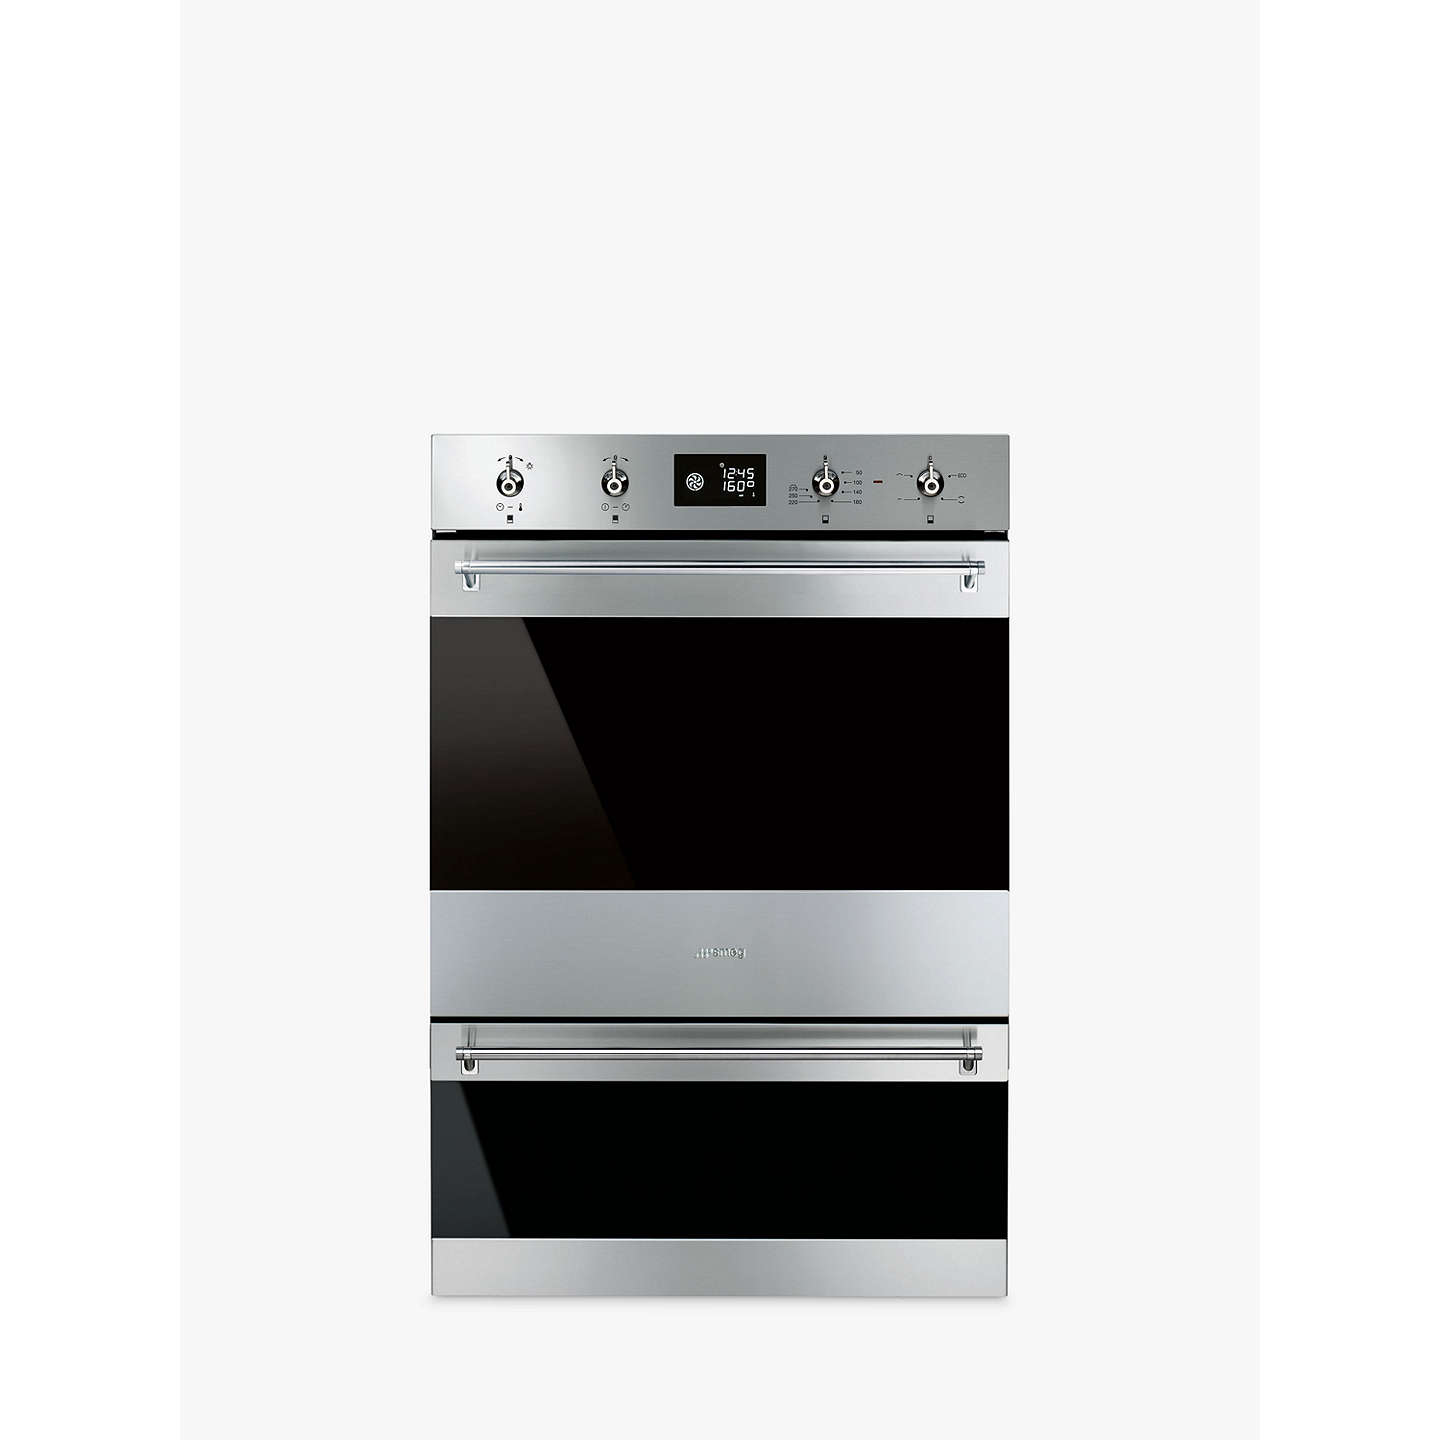 BuySmeg DOSP6390X Classic Built-In Multifunction Double Oven, Stainless Steel Online at johnlewis.com